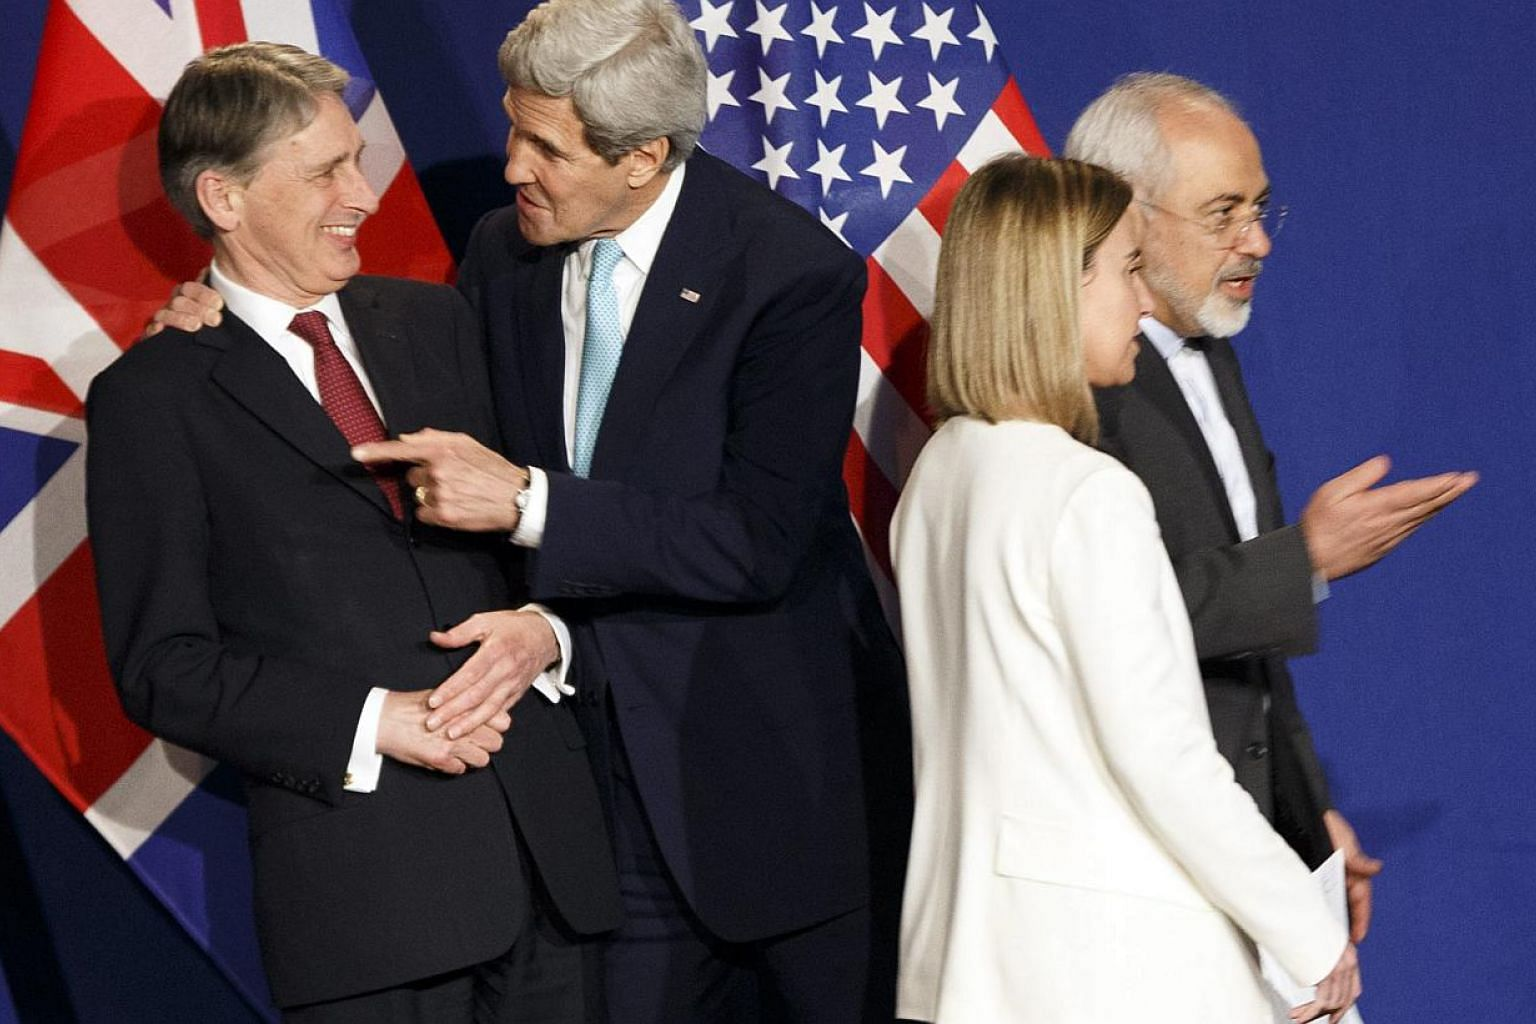 (From left) British Foreign Secretary Philip Hammond, US Secretary of State John Kerry, EU High Representative for Foreign Affairs and Security Policy Federica Mogherini and Iranian Foreign Minister Mohammad Javad Zarif react during a press event aft